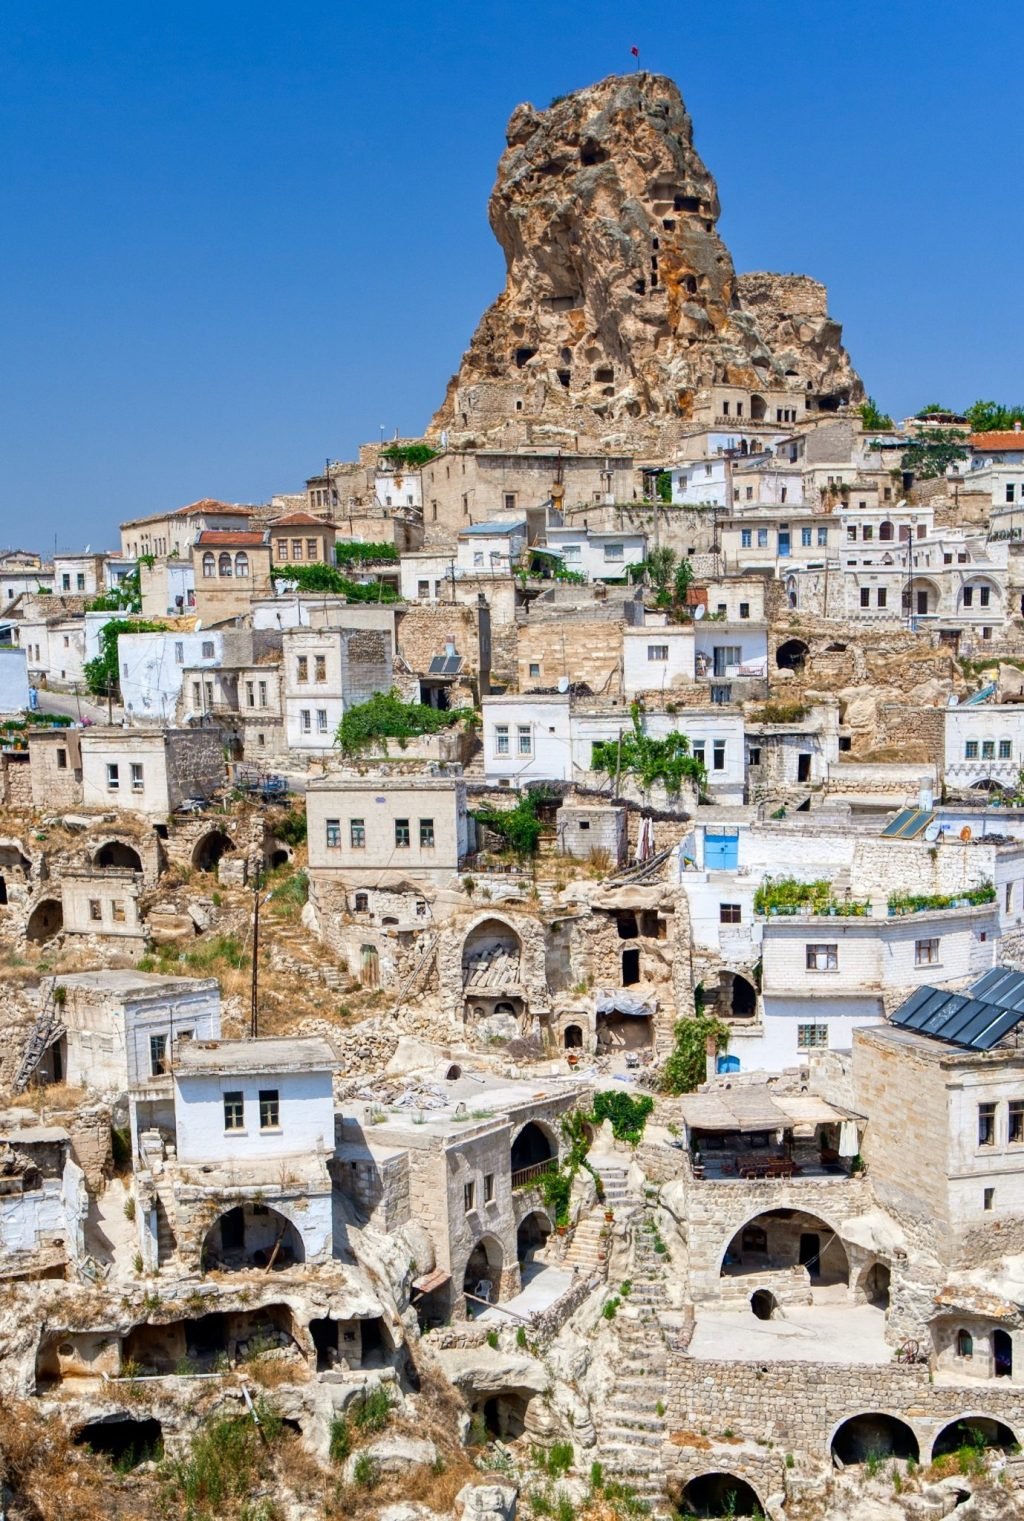 Best places to visit in Turkey! 11 cities worth visiting on your trip.